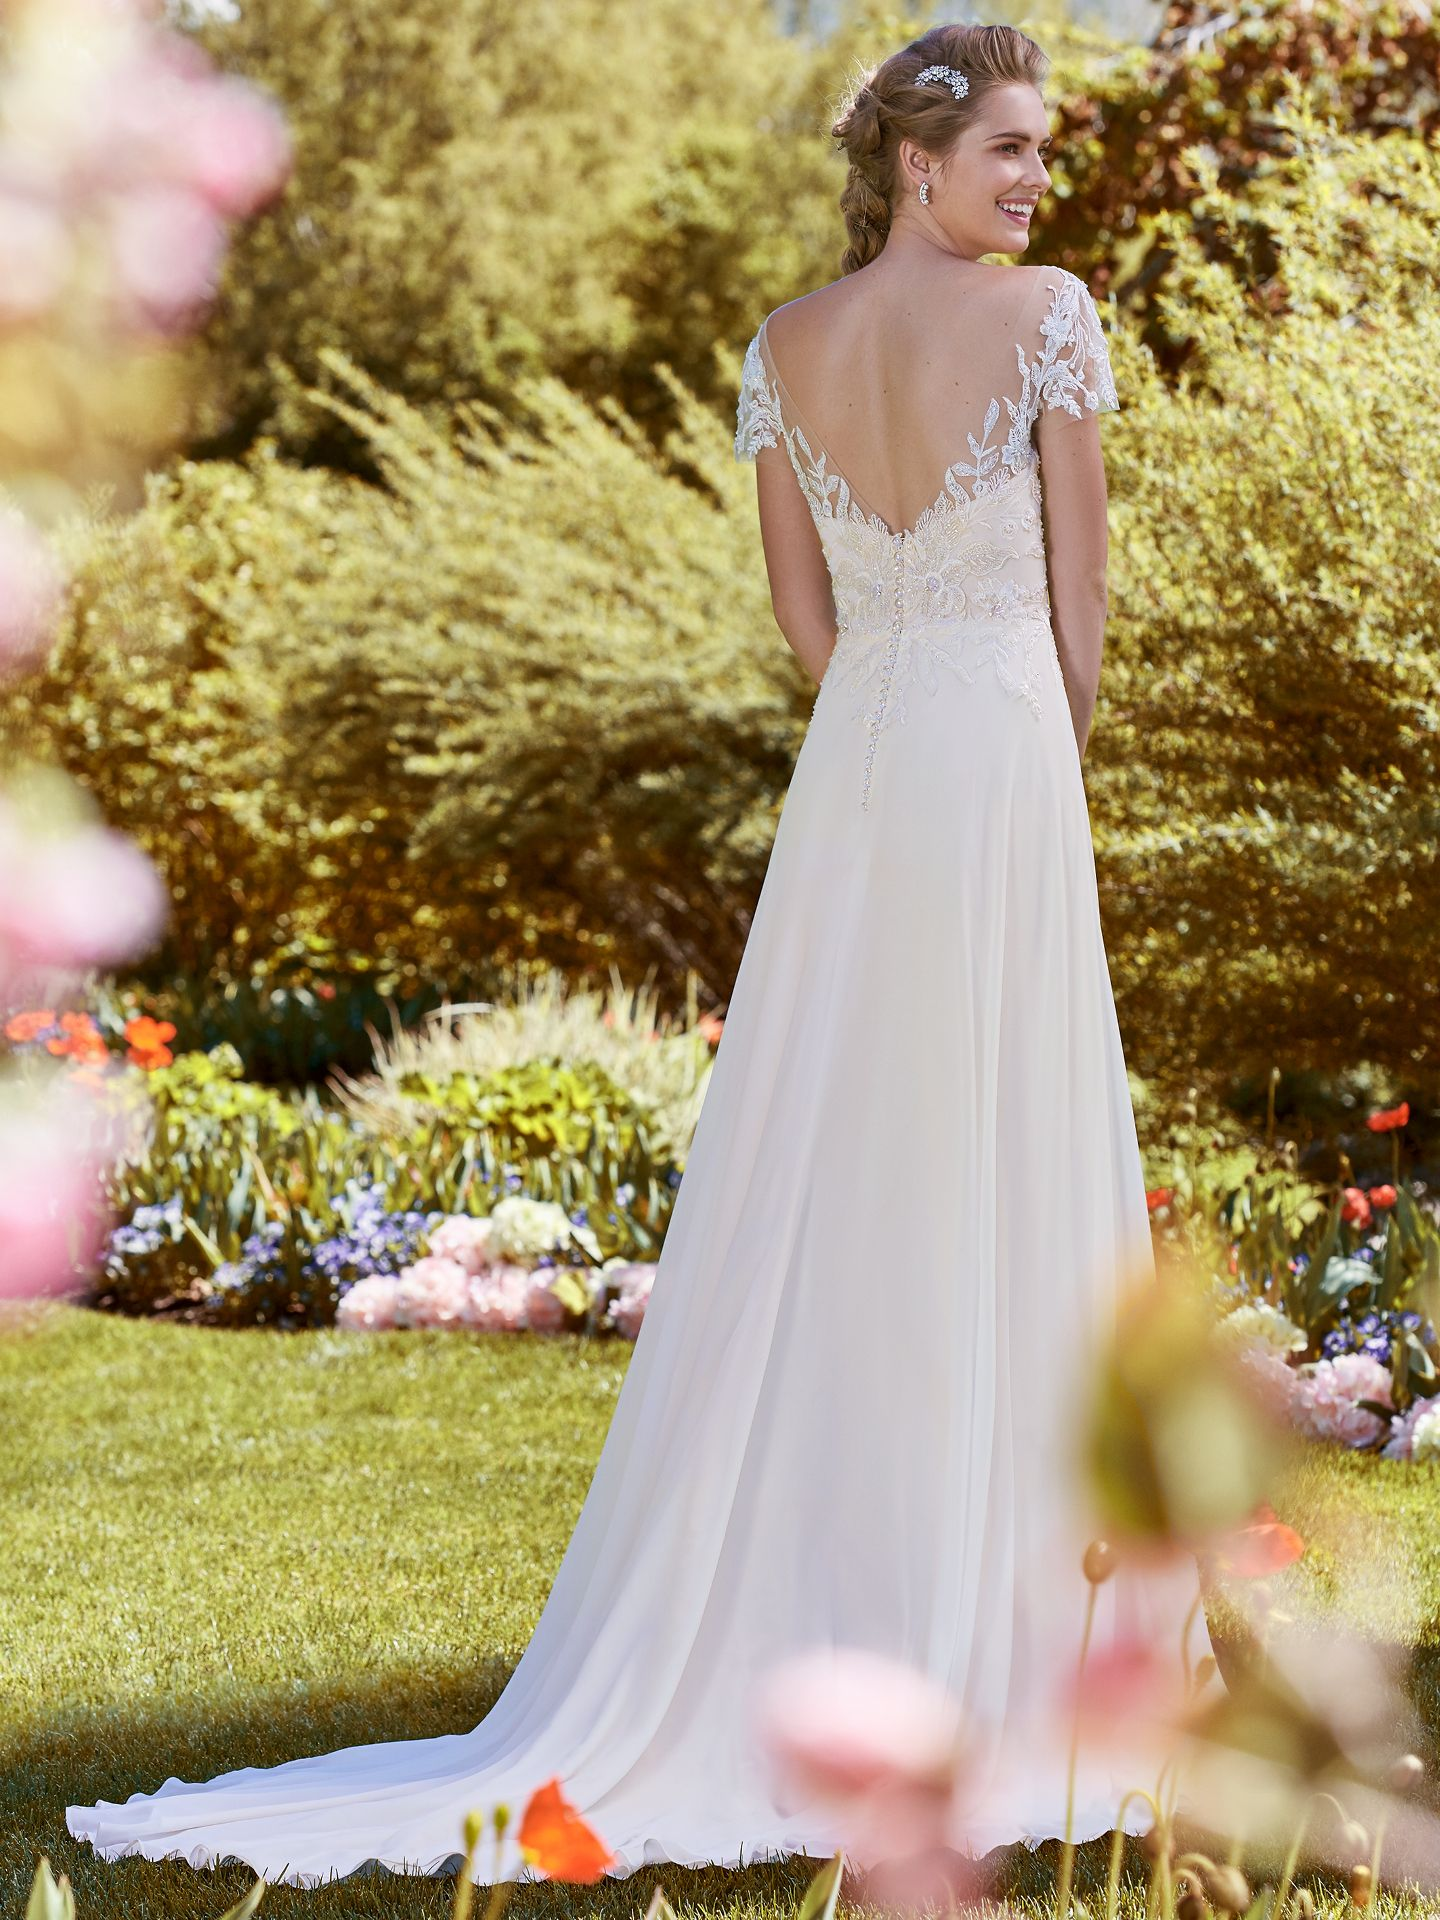 Flattering Wedding Dresses for Curvy Brides - Mercy by Rebecca Ingram